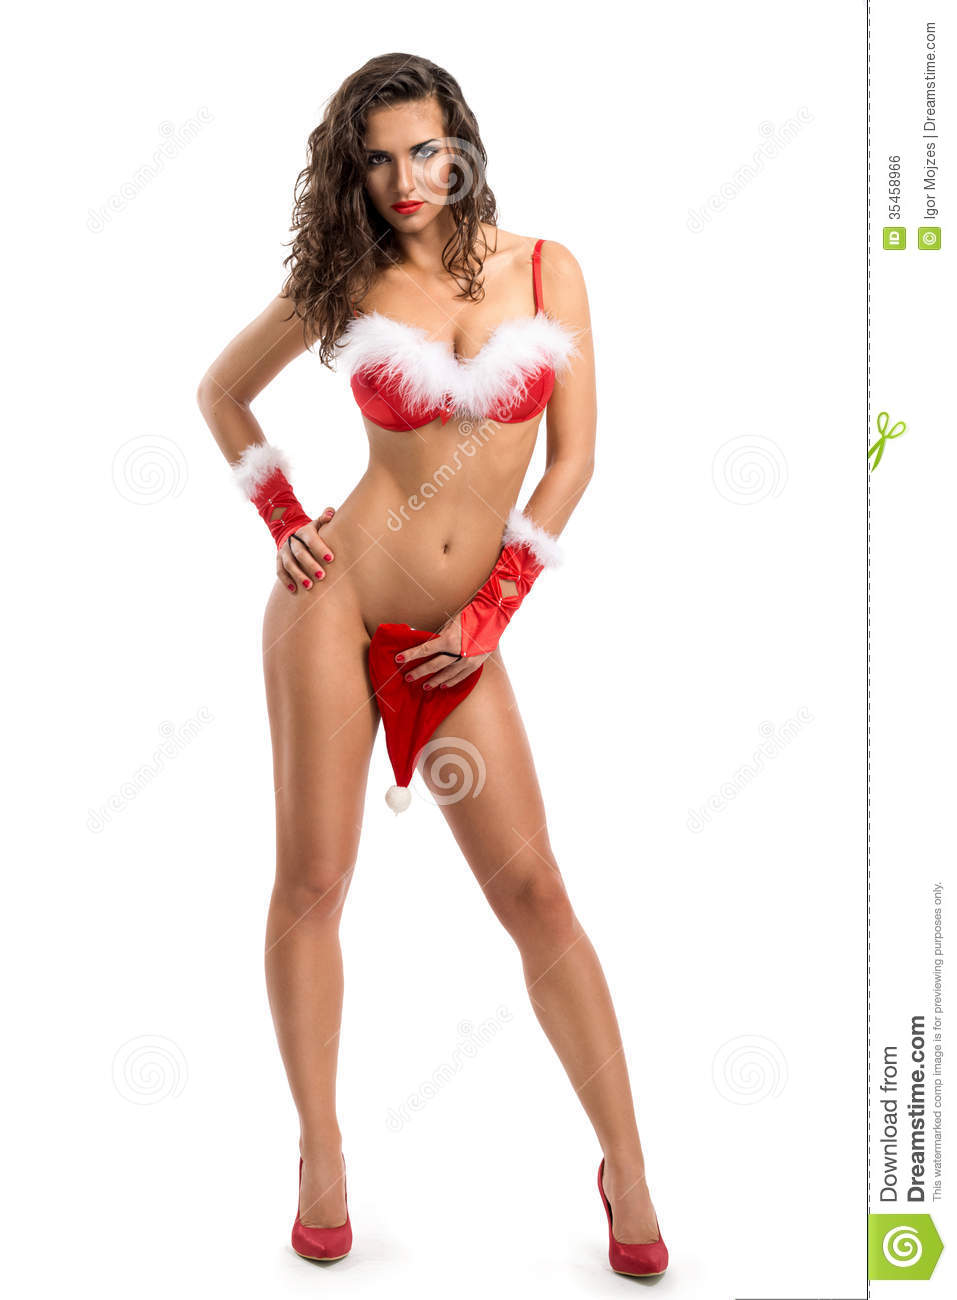 With you Free nude santa girls congratulate